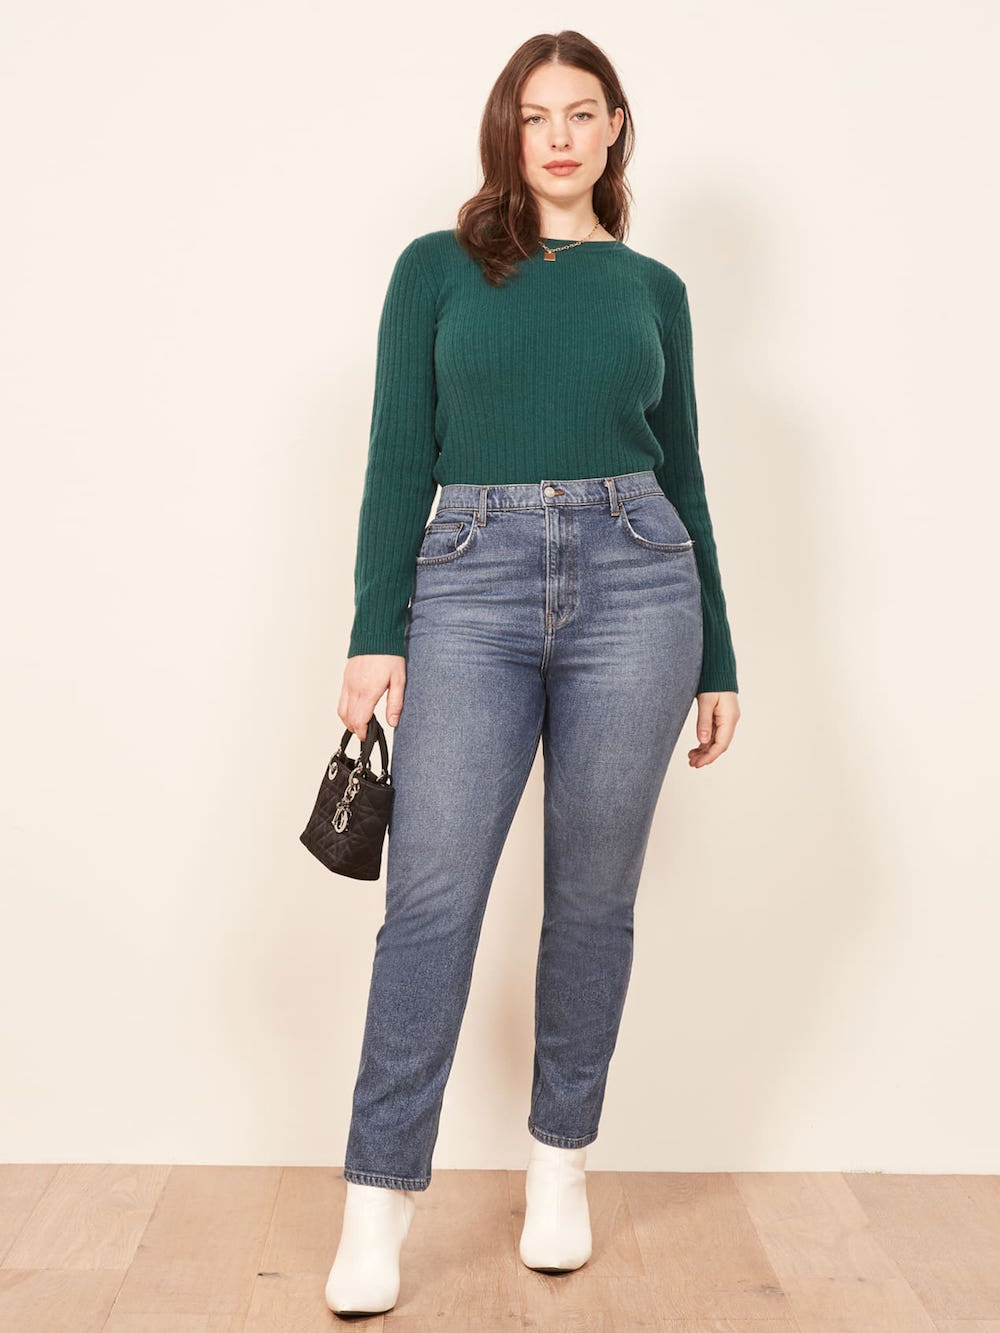 d75f41a5701e2d Best High-Waisted Jeans for Every Body Type - theFashionSpot